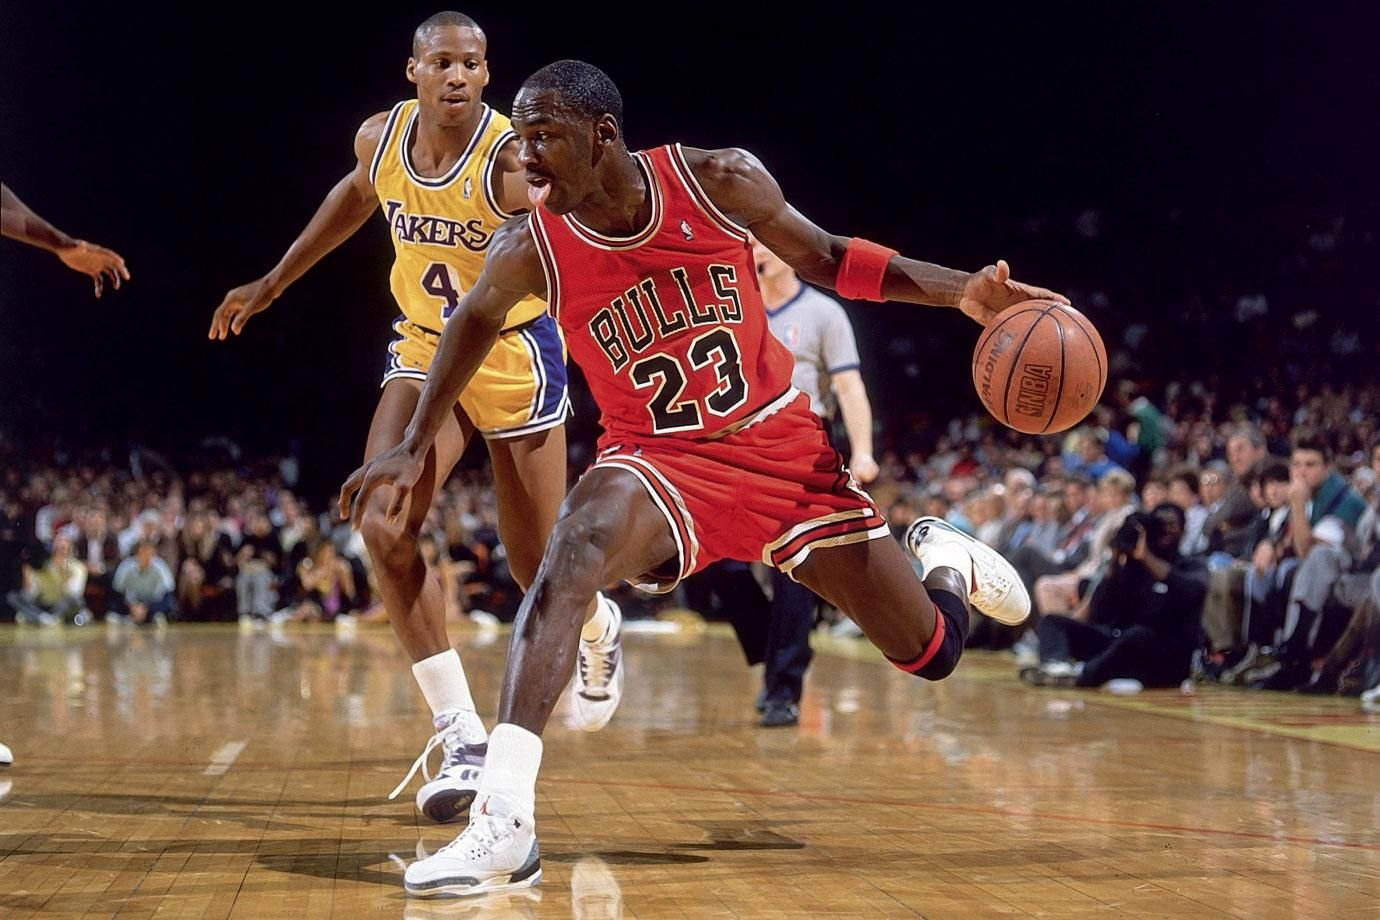 Michael Jordan fakes on a drive against the Los Angeles Lakers in February 1988. By Andy Hayt for Sports Illustrated